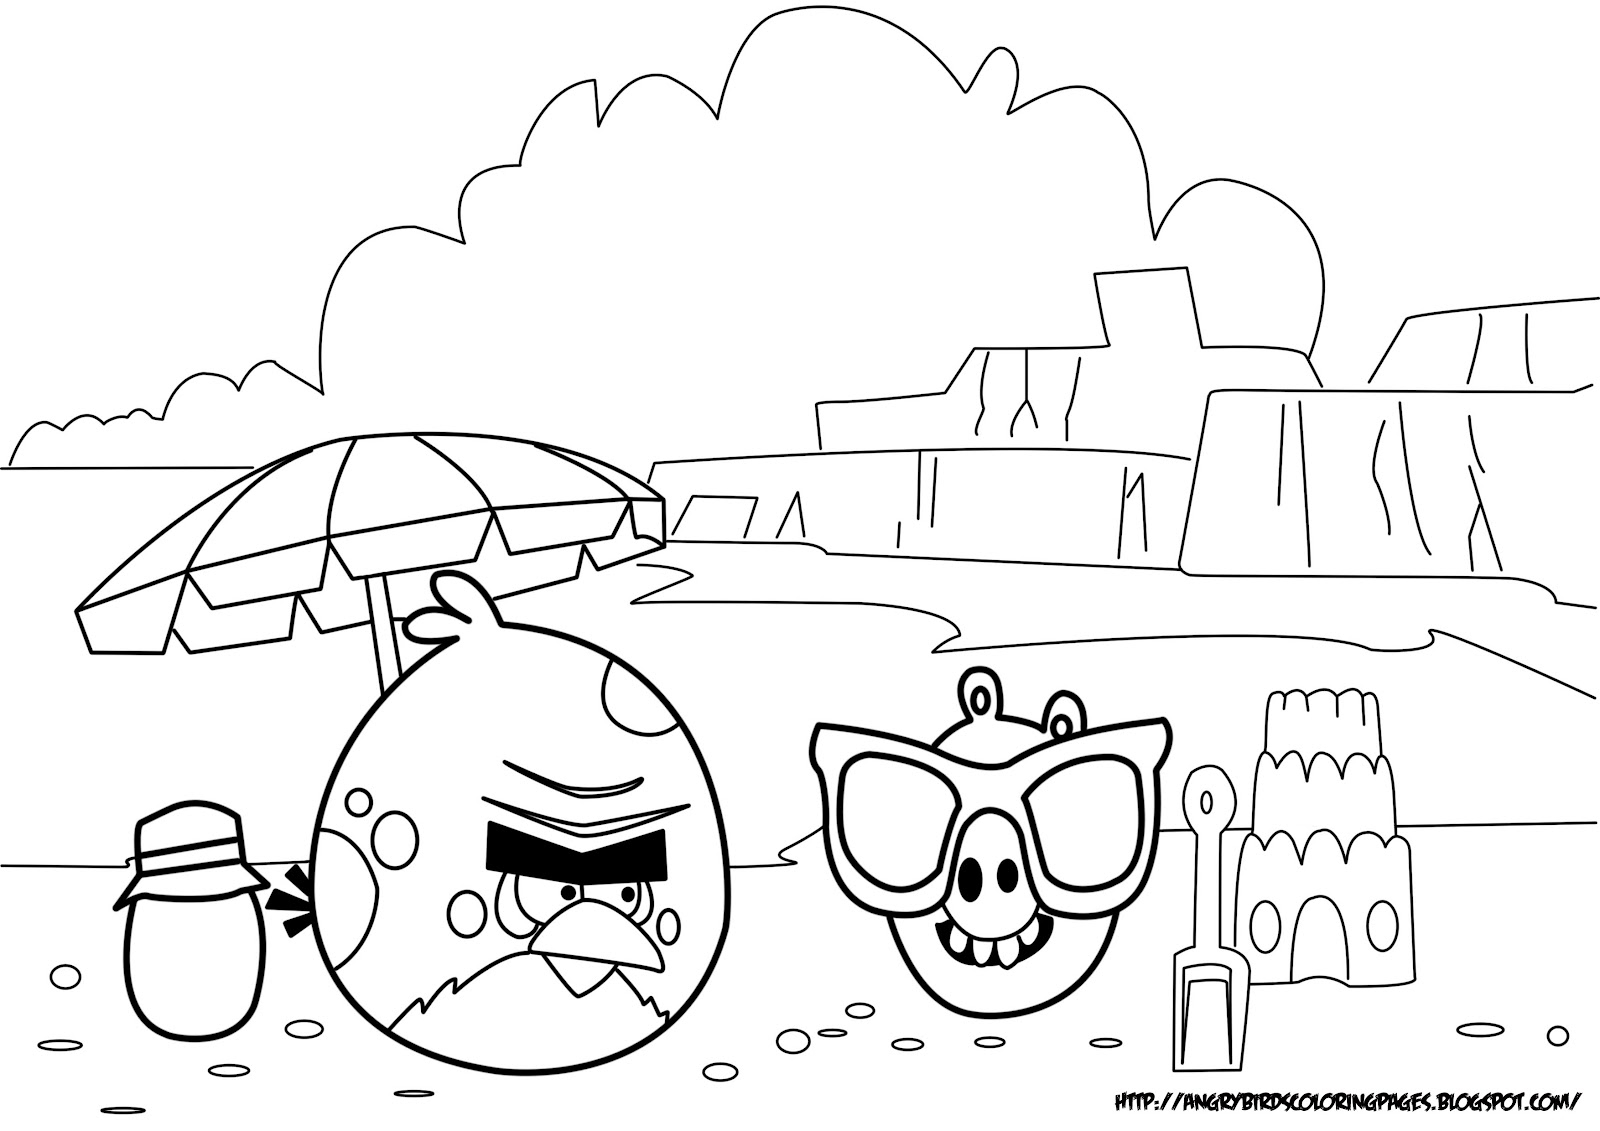 Sea Monster Coloring Pages Sea Monster Coloring Pages Coloring Pages Gallery